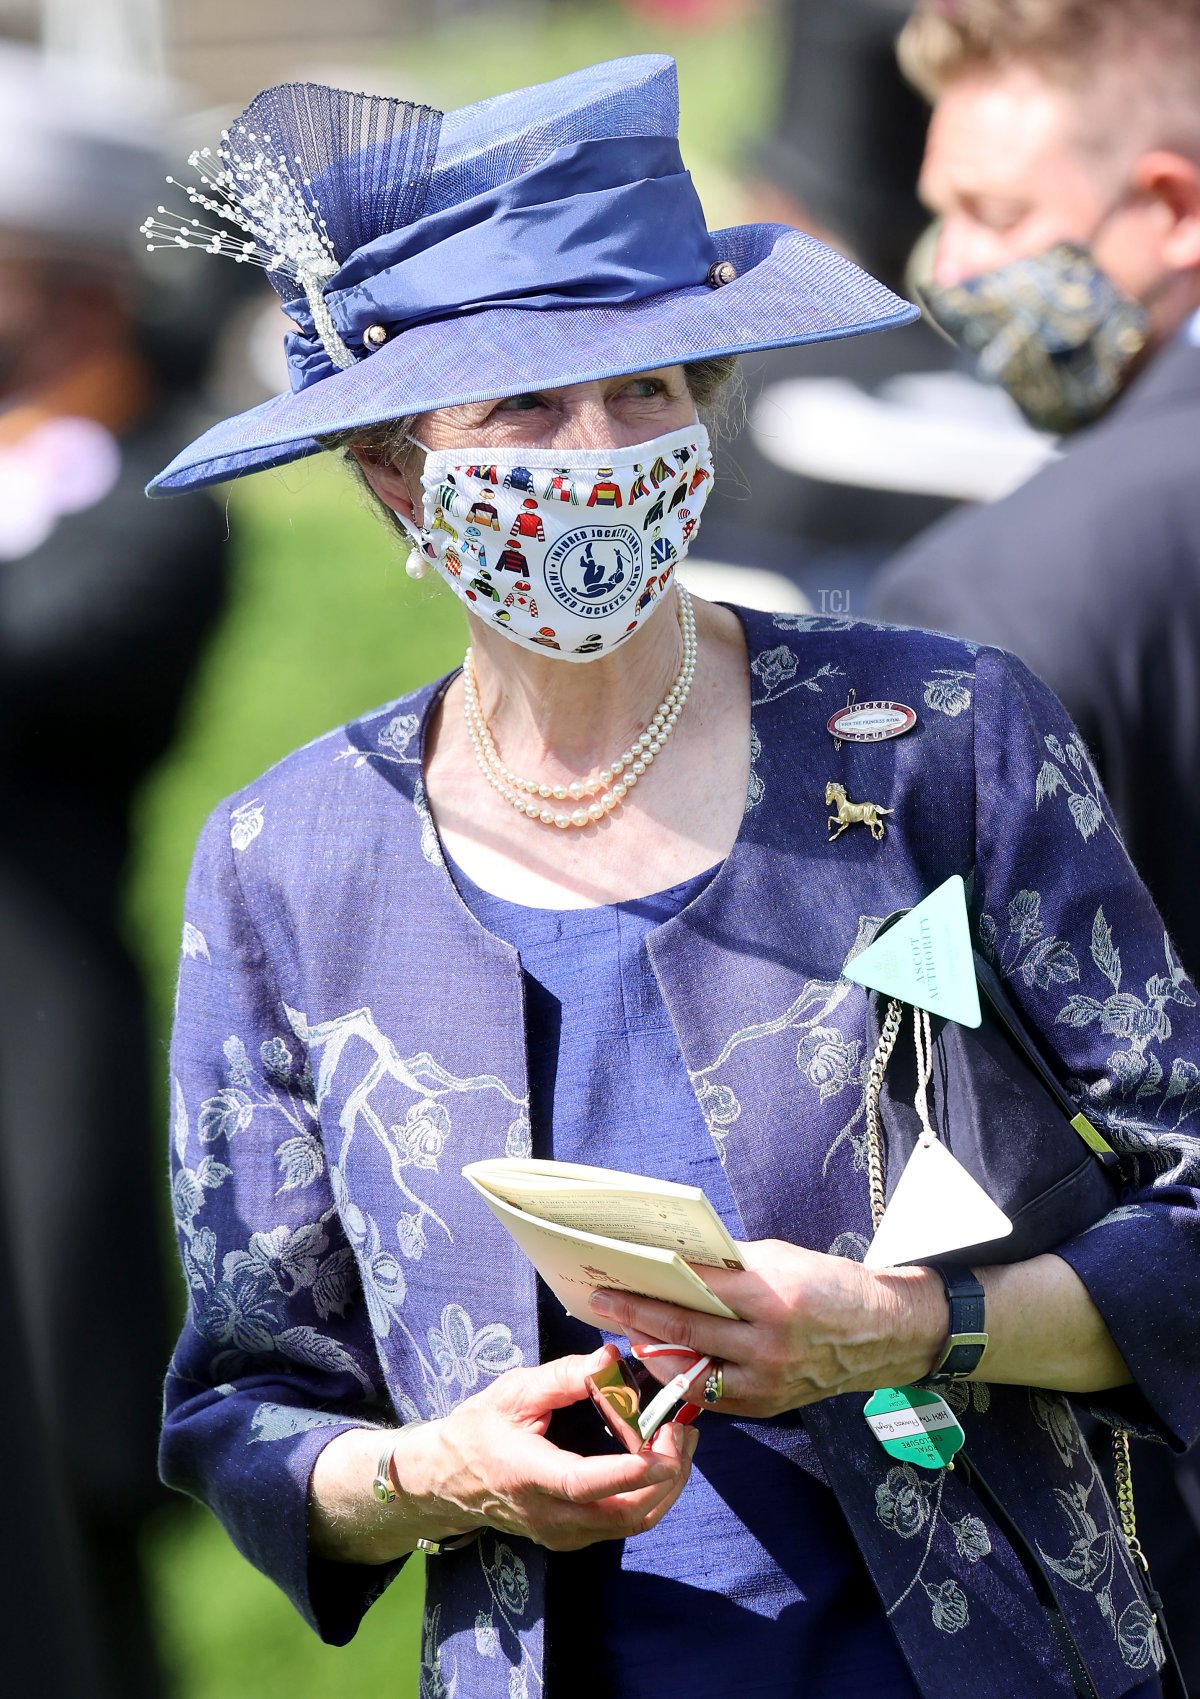 Princess Anne, Princess Royal arrives for Royal Ascot 2021 at Ascot Racecourse on June 15, 2021 in Ascot, England